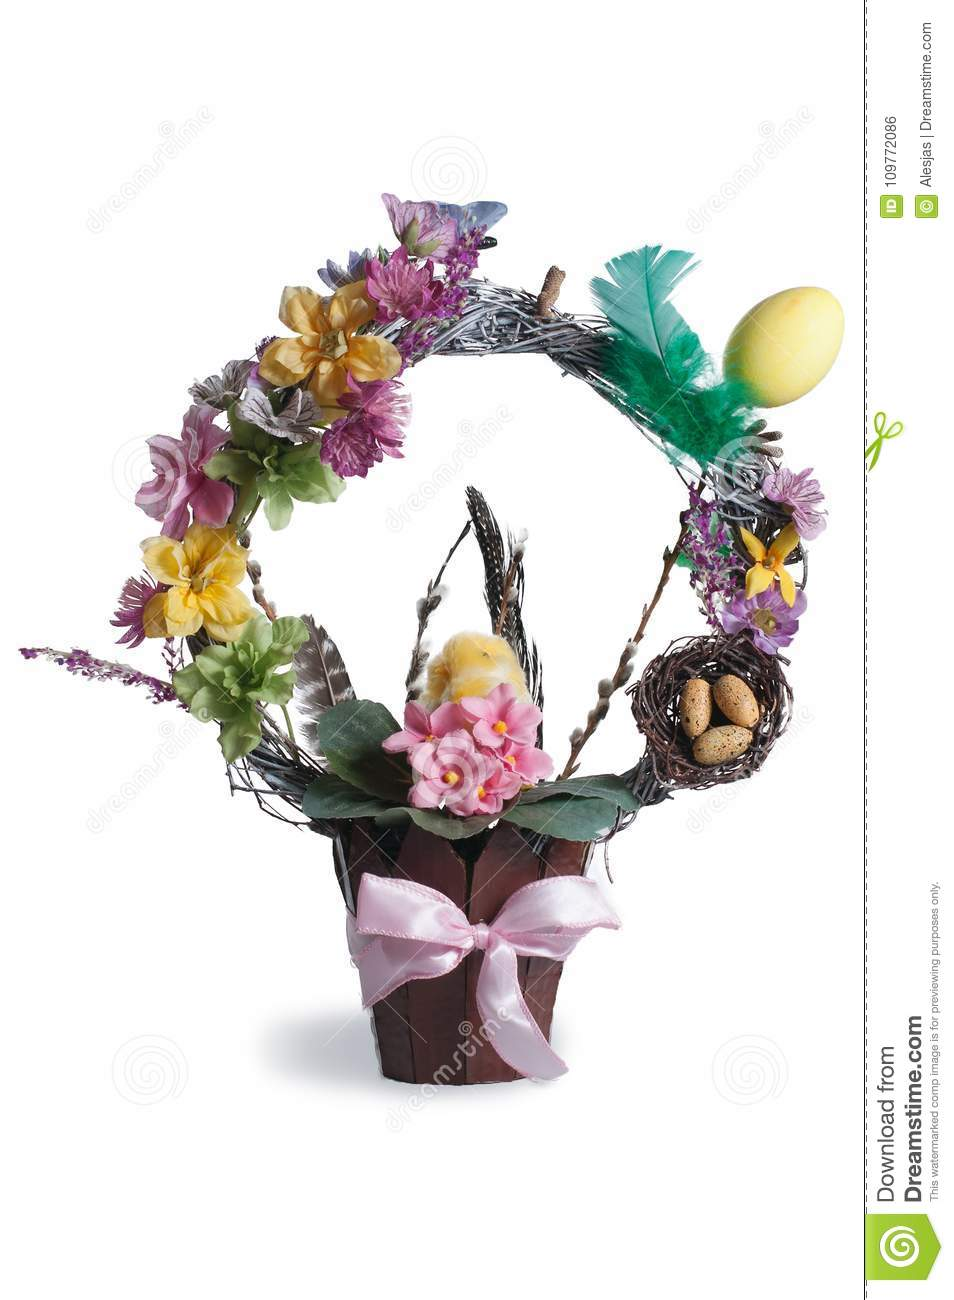 Easter Floral Topiary With A Bird And A Nest Over White Background Stock Photo Image Of Craft Concept 109772086